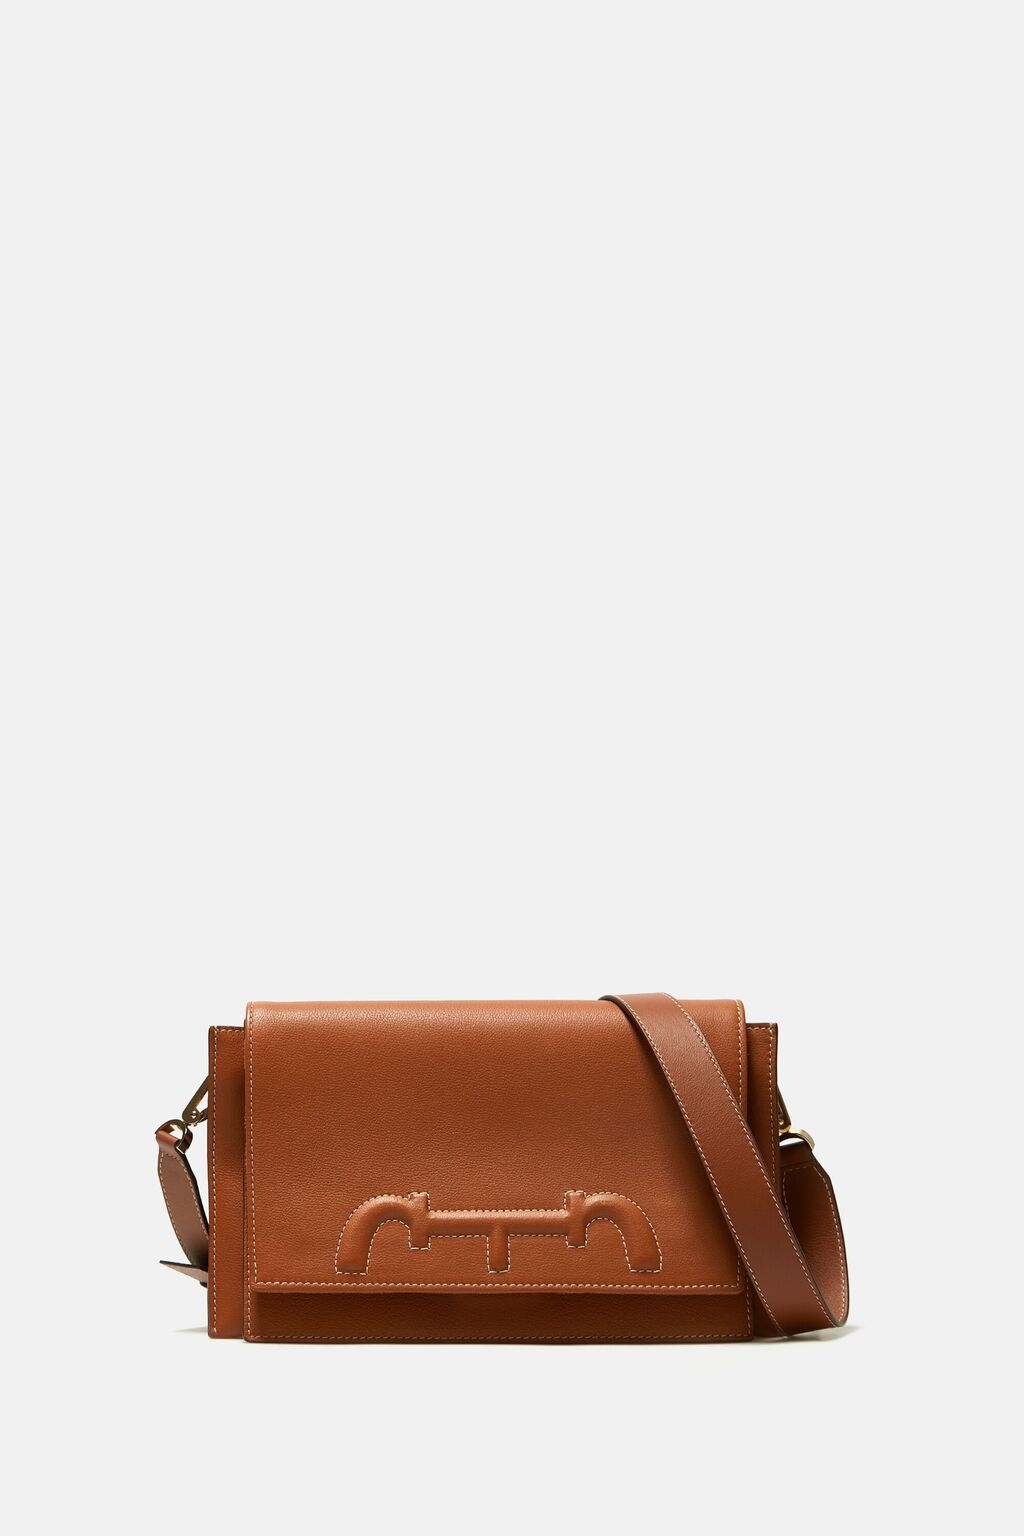 Doma Insignia | Medium Cross Body Bag